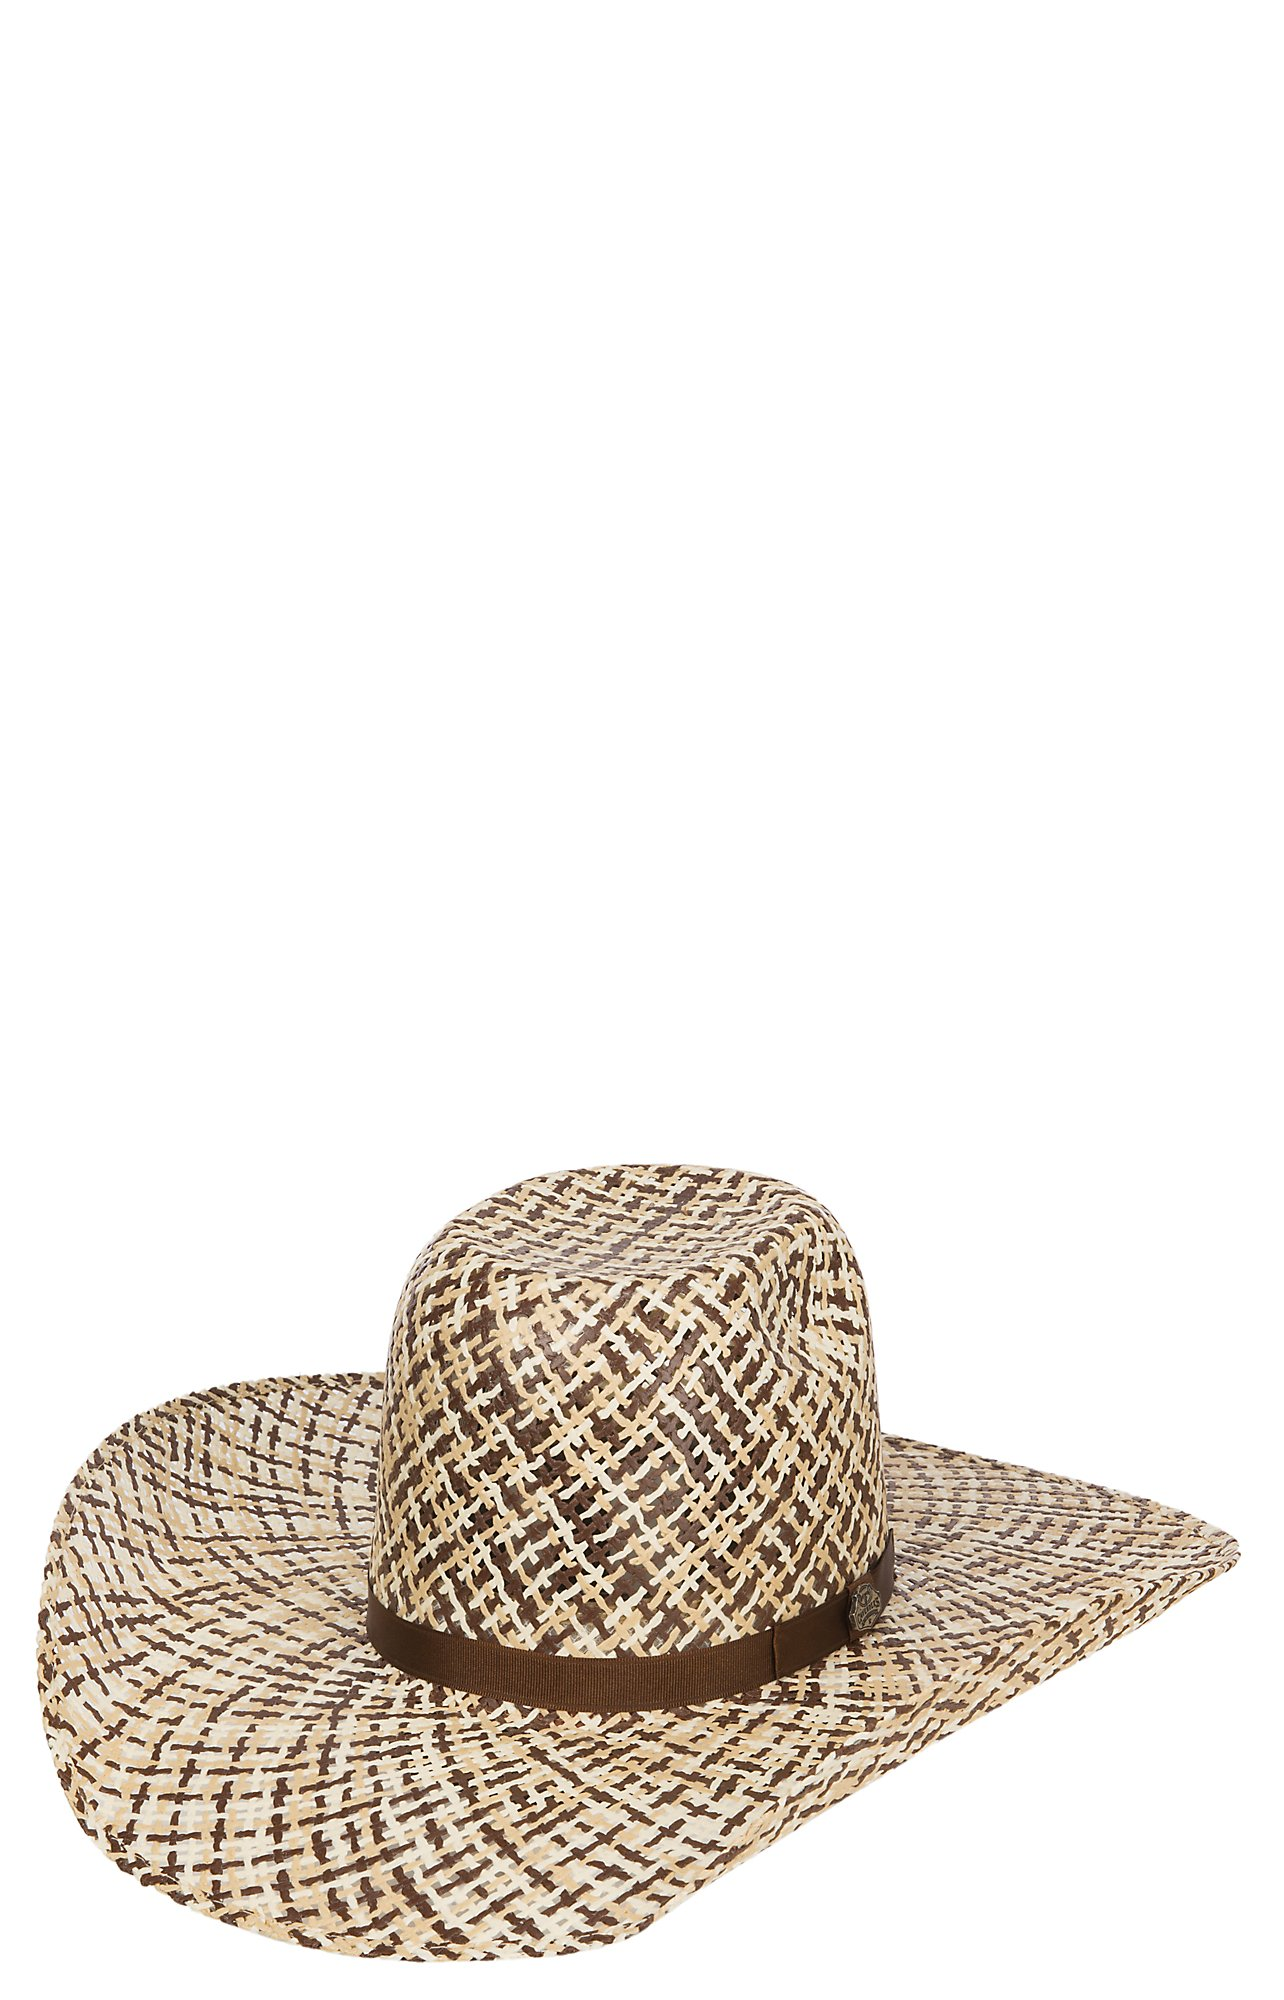 Cavender s Ranch Collection 3 Tone Twister Weave Vented Straw Hat ... 735b1e5ec913